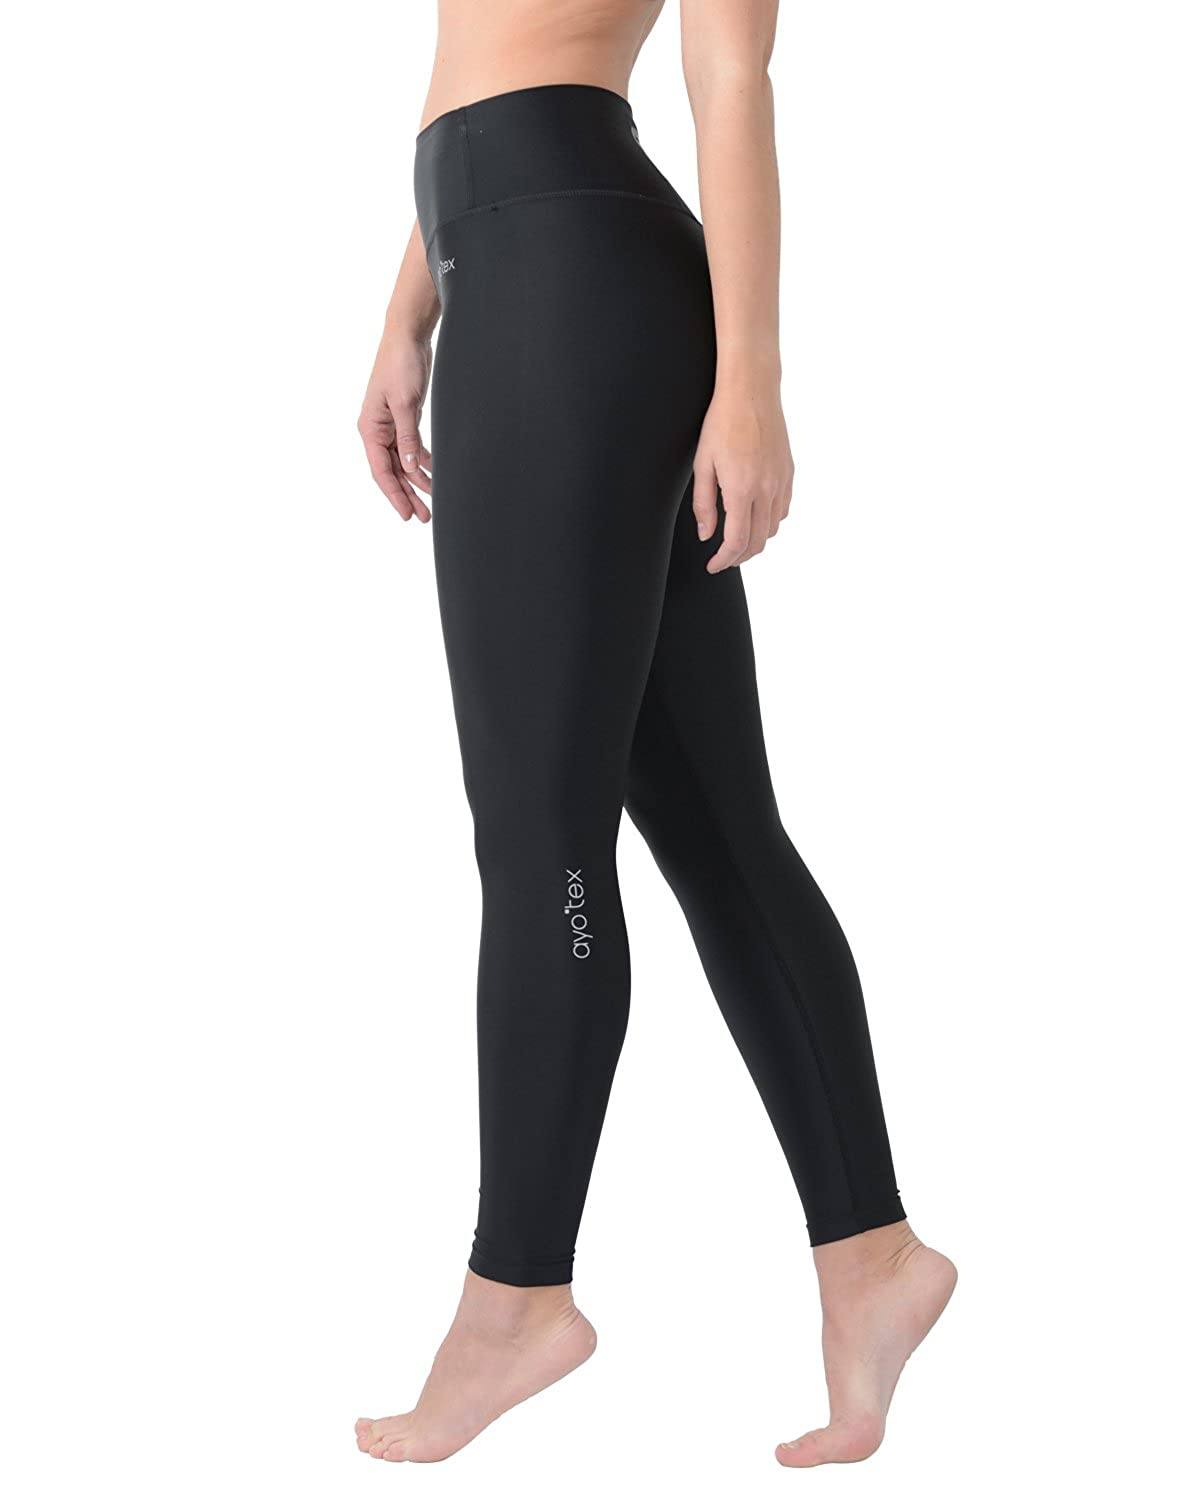 400fd1153dbfd Non see through, High elastic material-- These classic black workout  leggings made by 85%nylon,15%spandex. Non see-through and moisture-wicking.